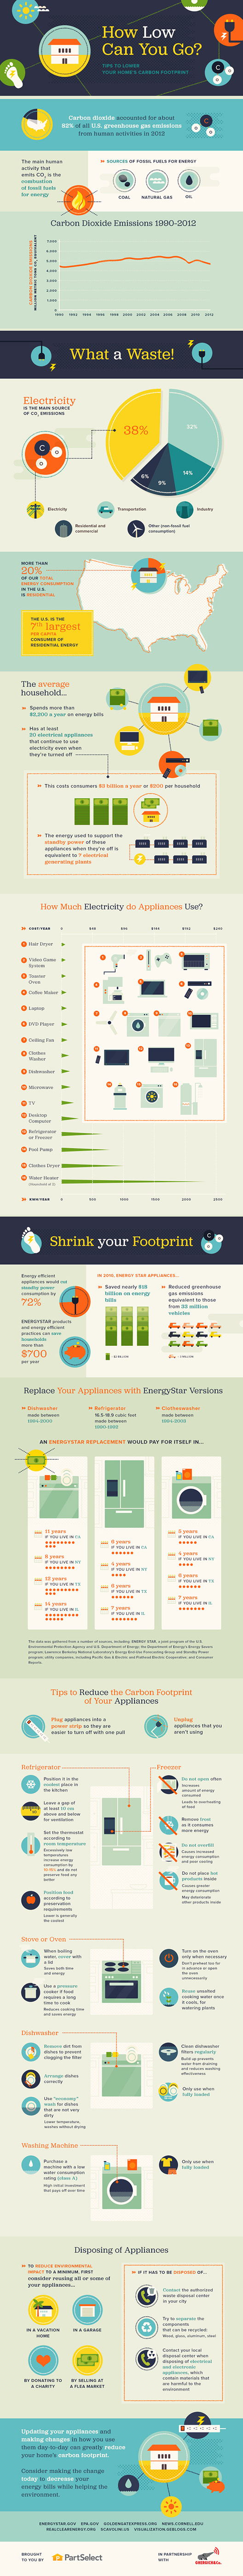 infographic, reducing carbon footprint, carbon emissions, reducing carbon emissions, home carbon emissions, home carbon footprint, reducing energy use, reducing electricity use, Part Select, reader submission